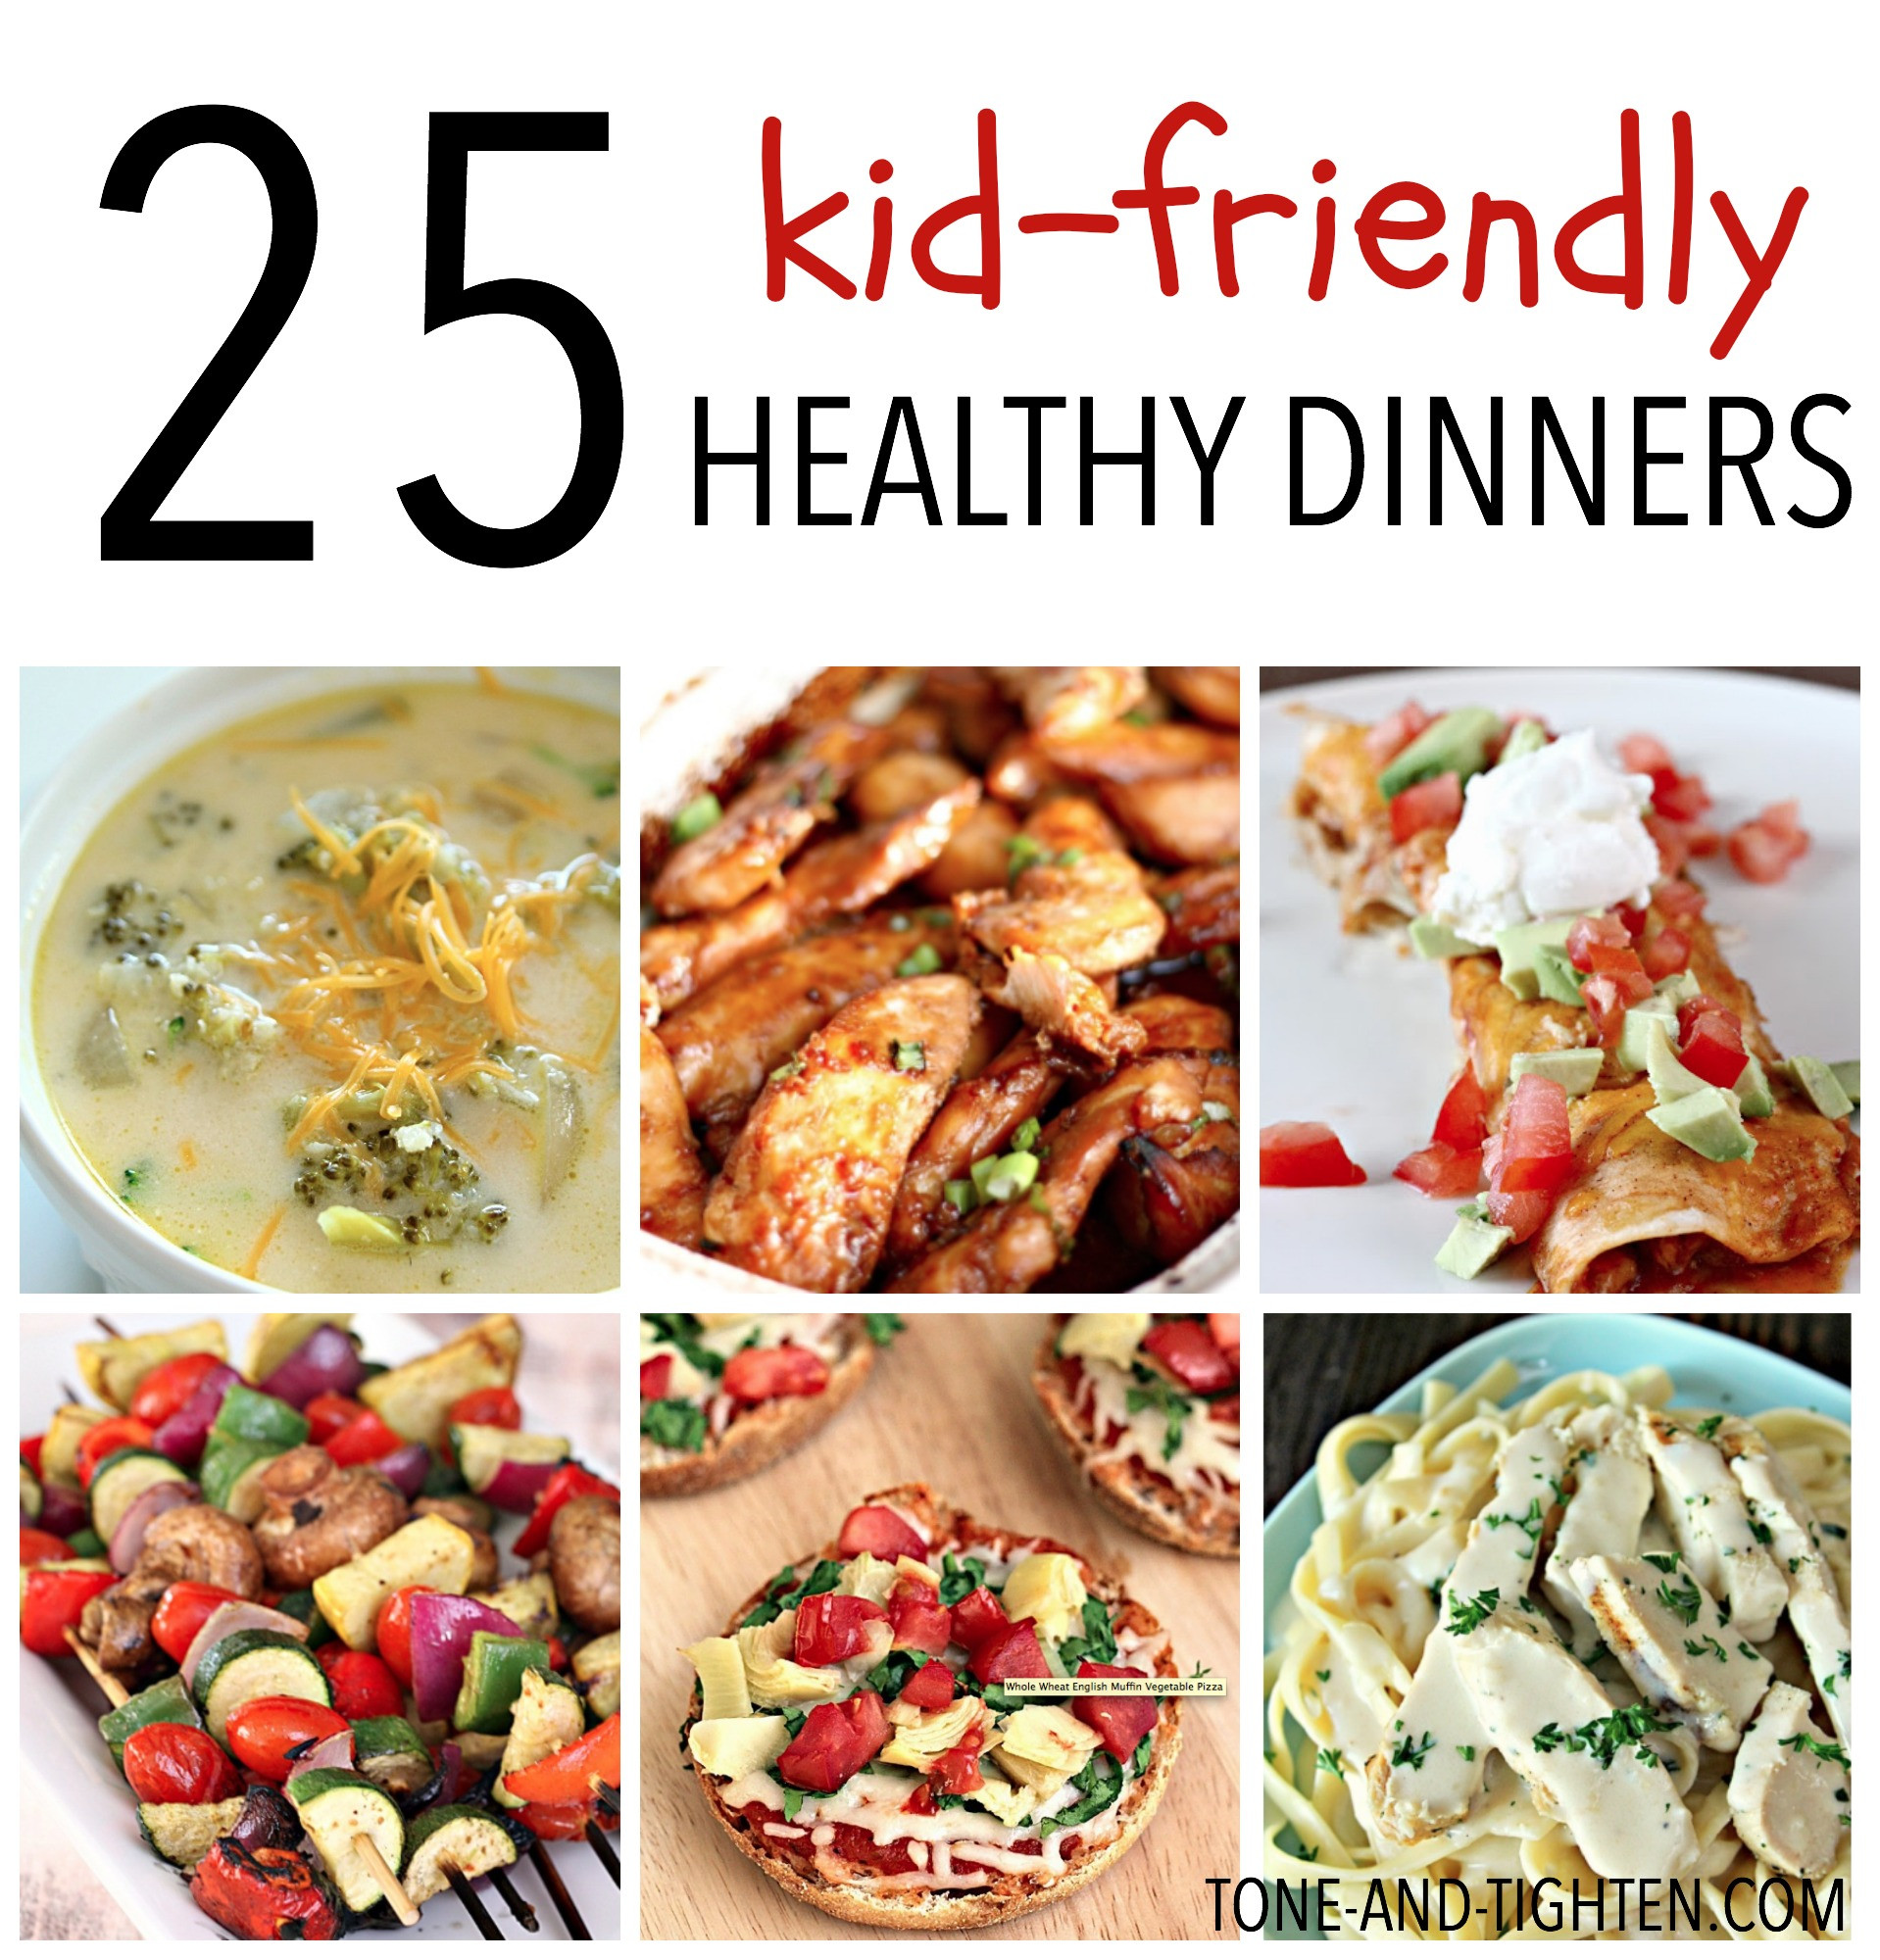 Easy Healthy Kid Friendly Dinner Recipes  25 Kid Friendly Healthy Dinners